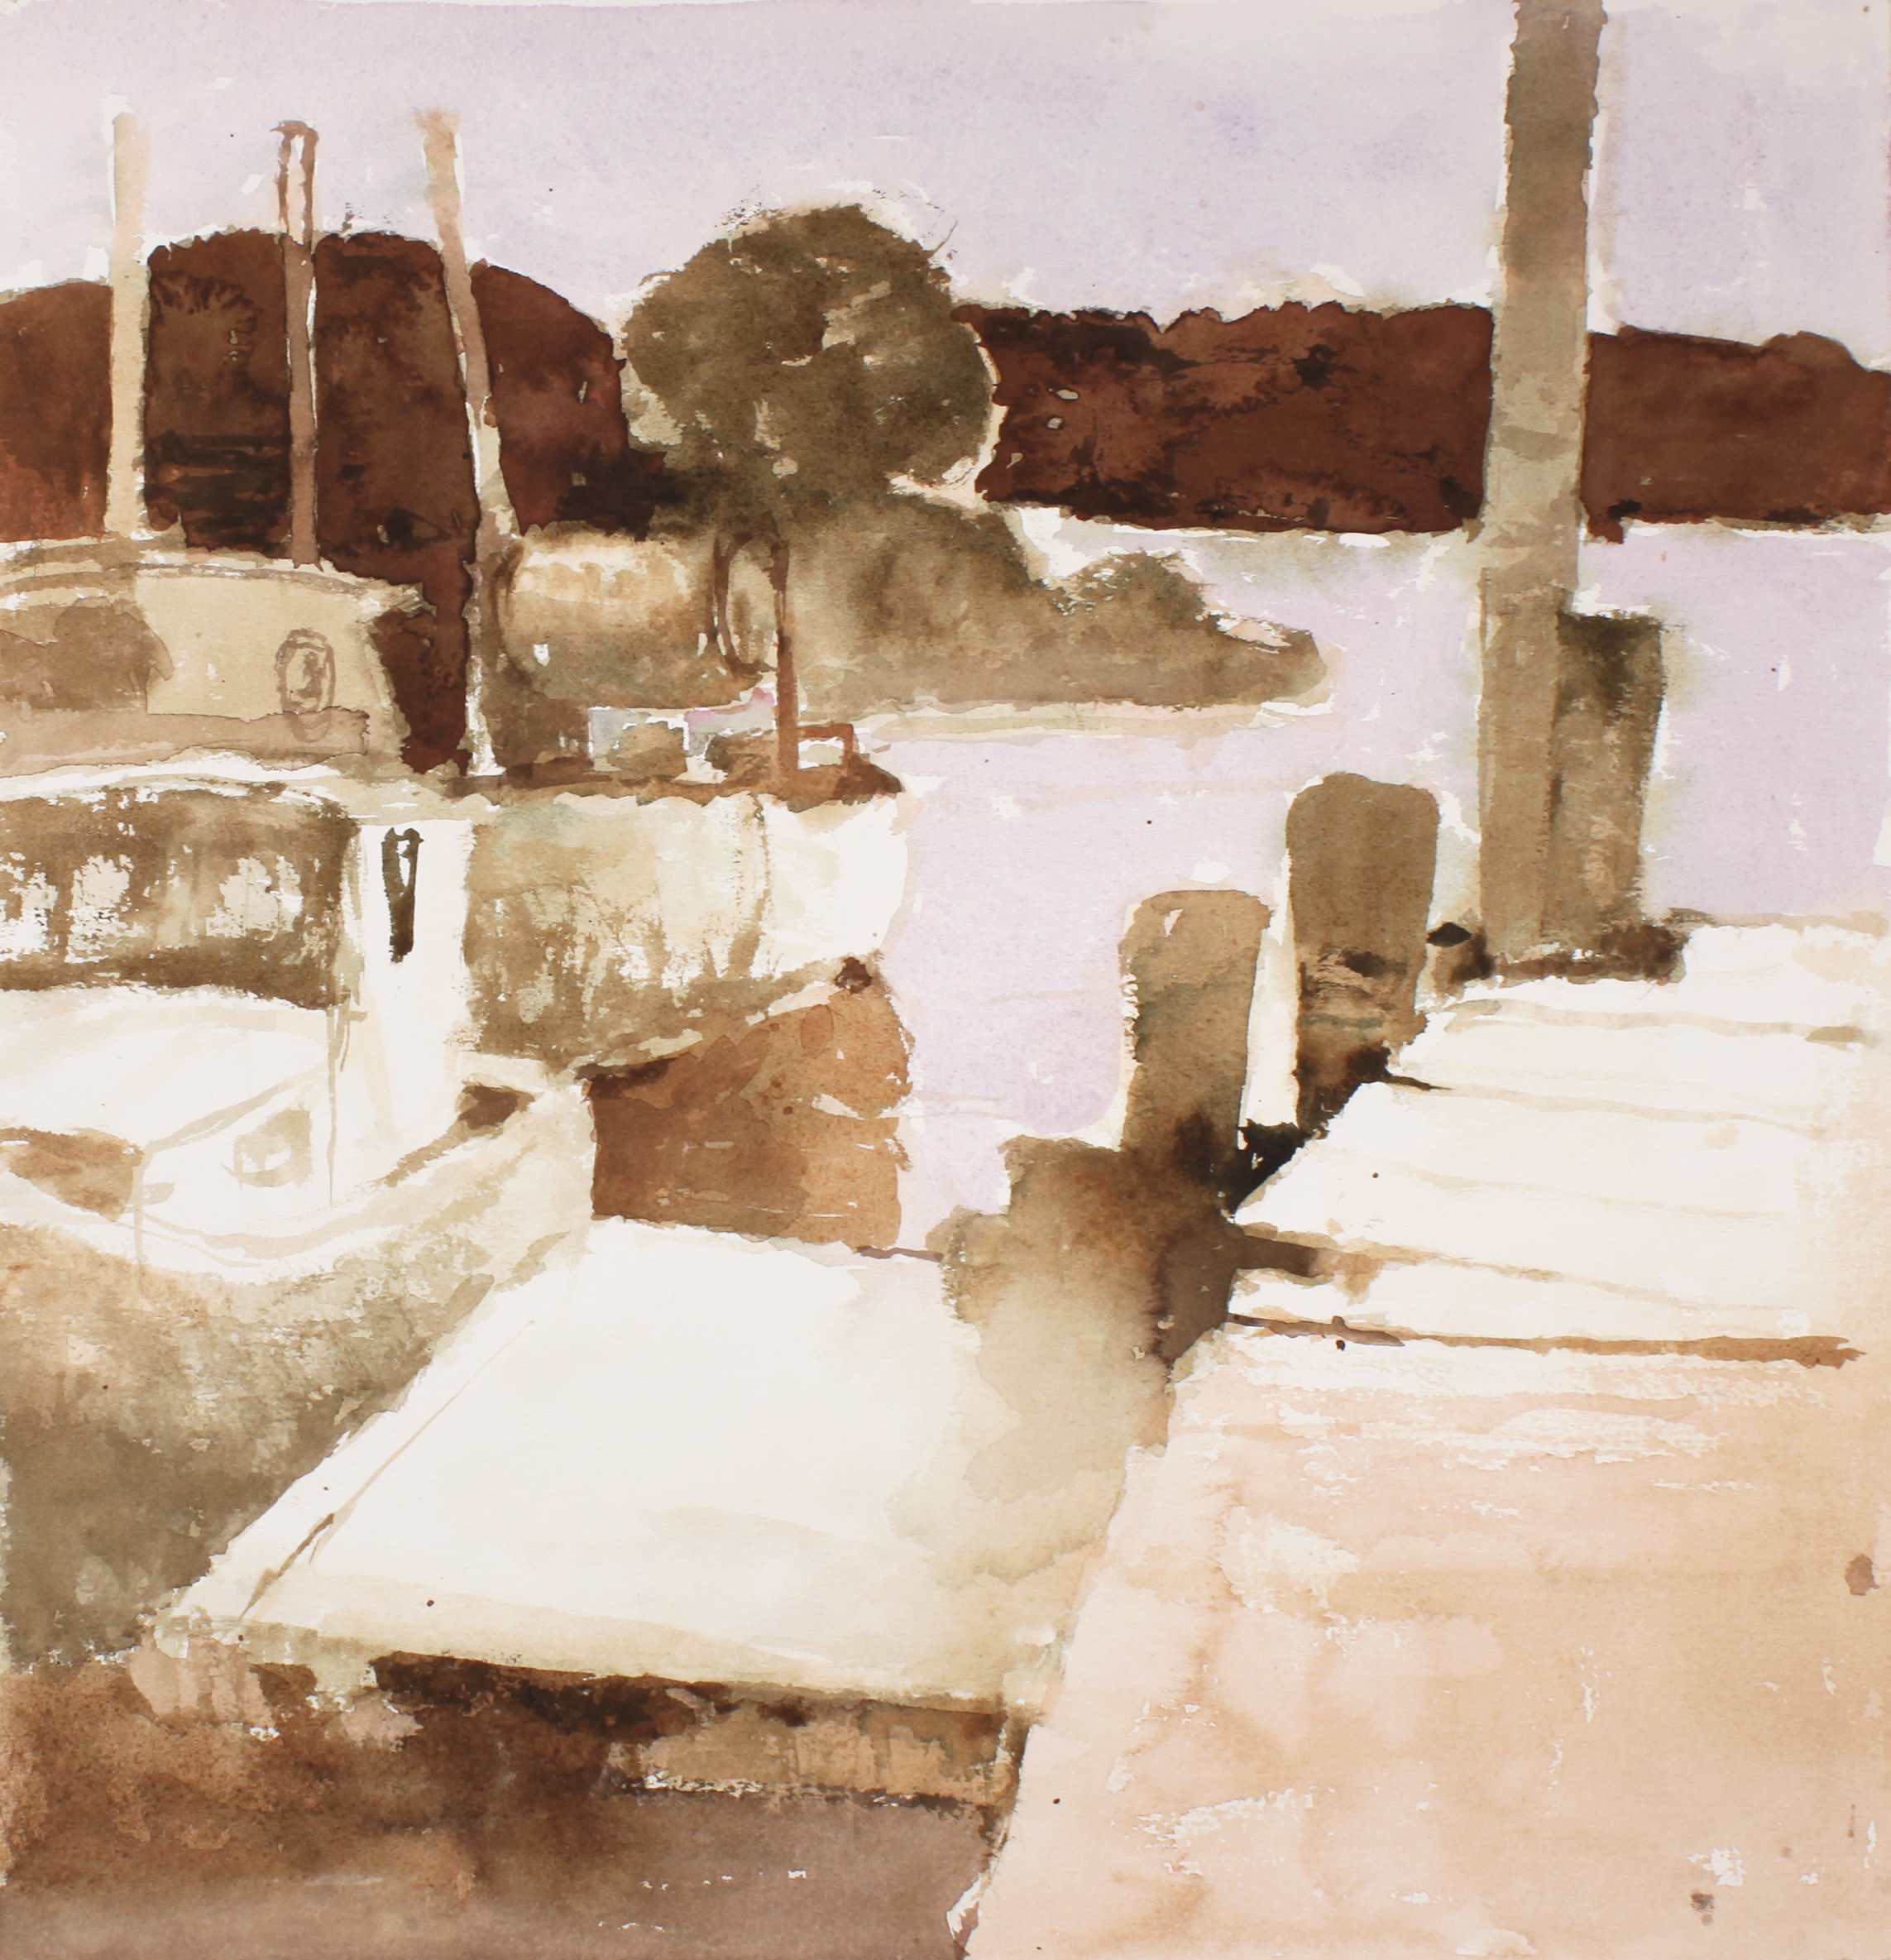 1980s_Boats_at_Dock_Maine_watercolour_on_paper_16x15in_WPF679.jpg